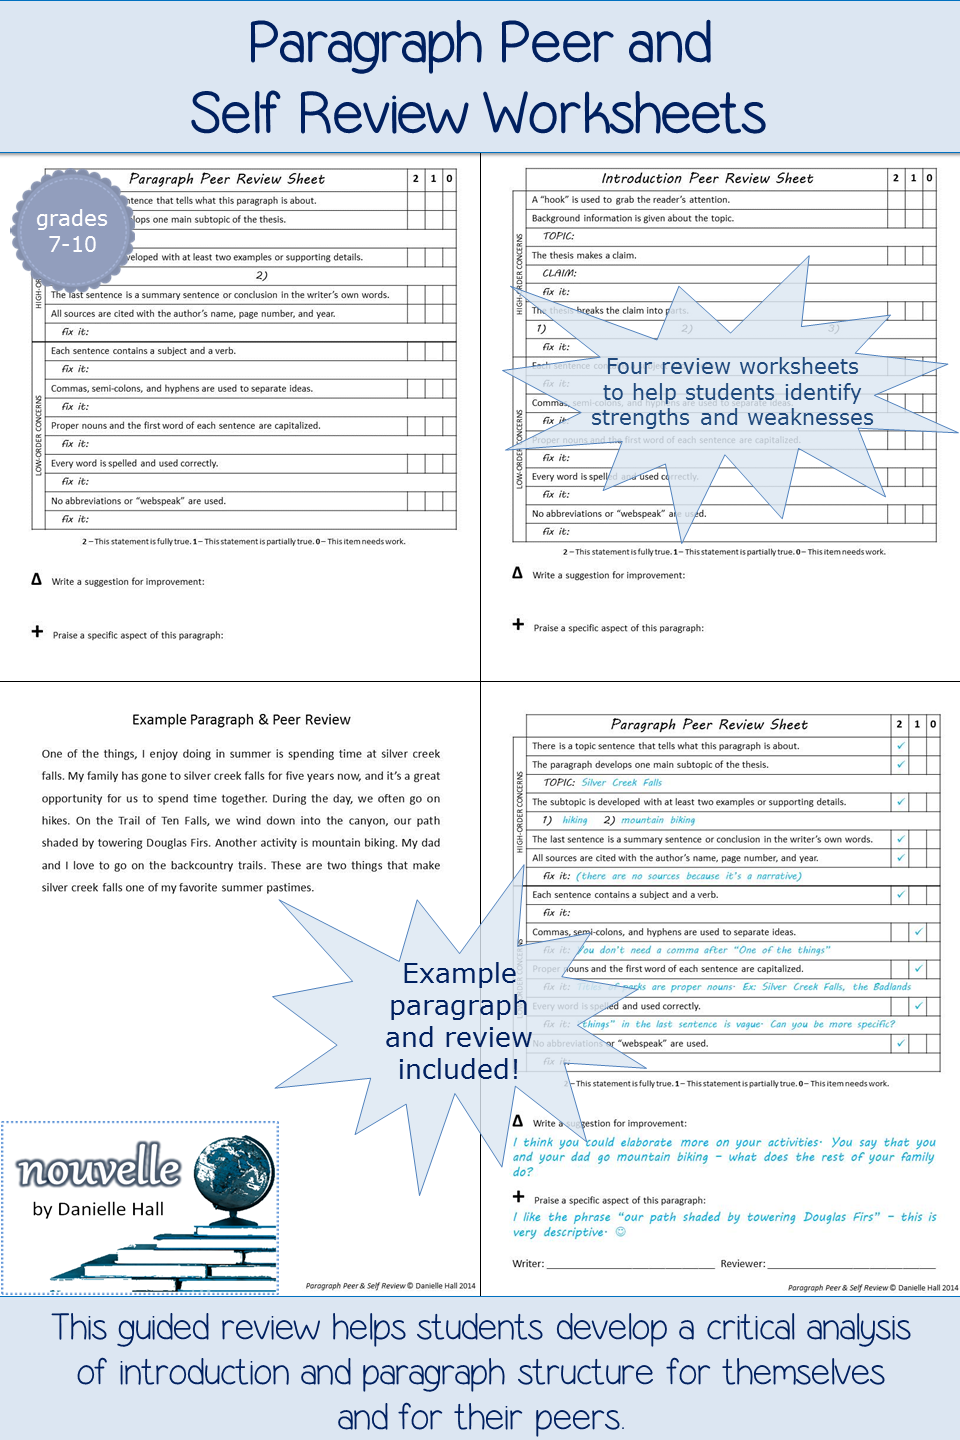 Paragraph Peer and Self Review Worksheets Sample Review included – Peer Review Worksheet